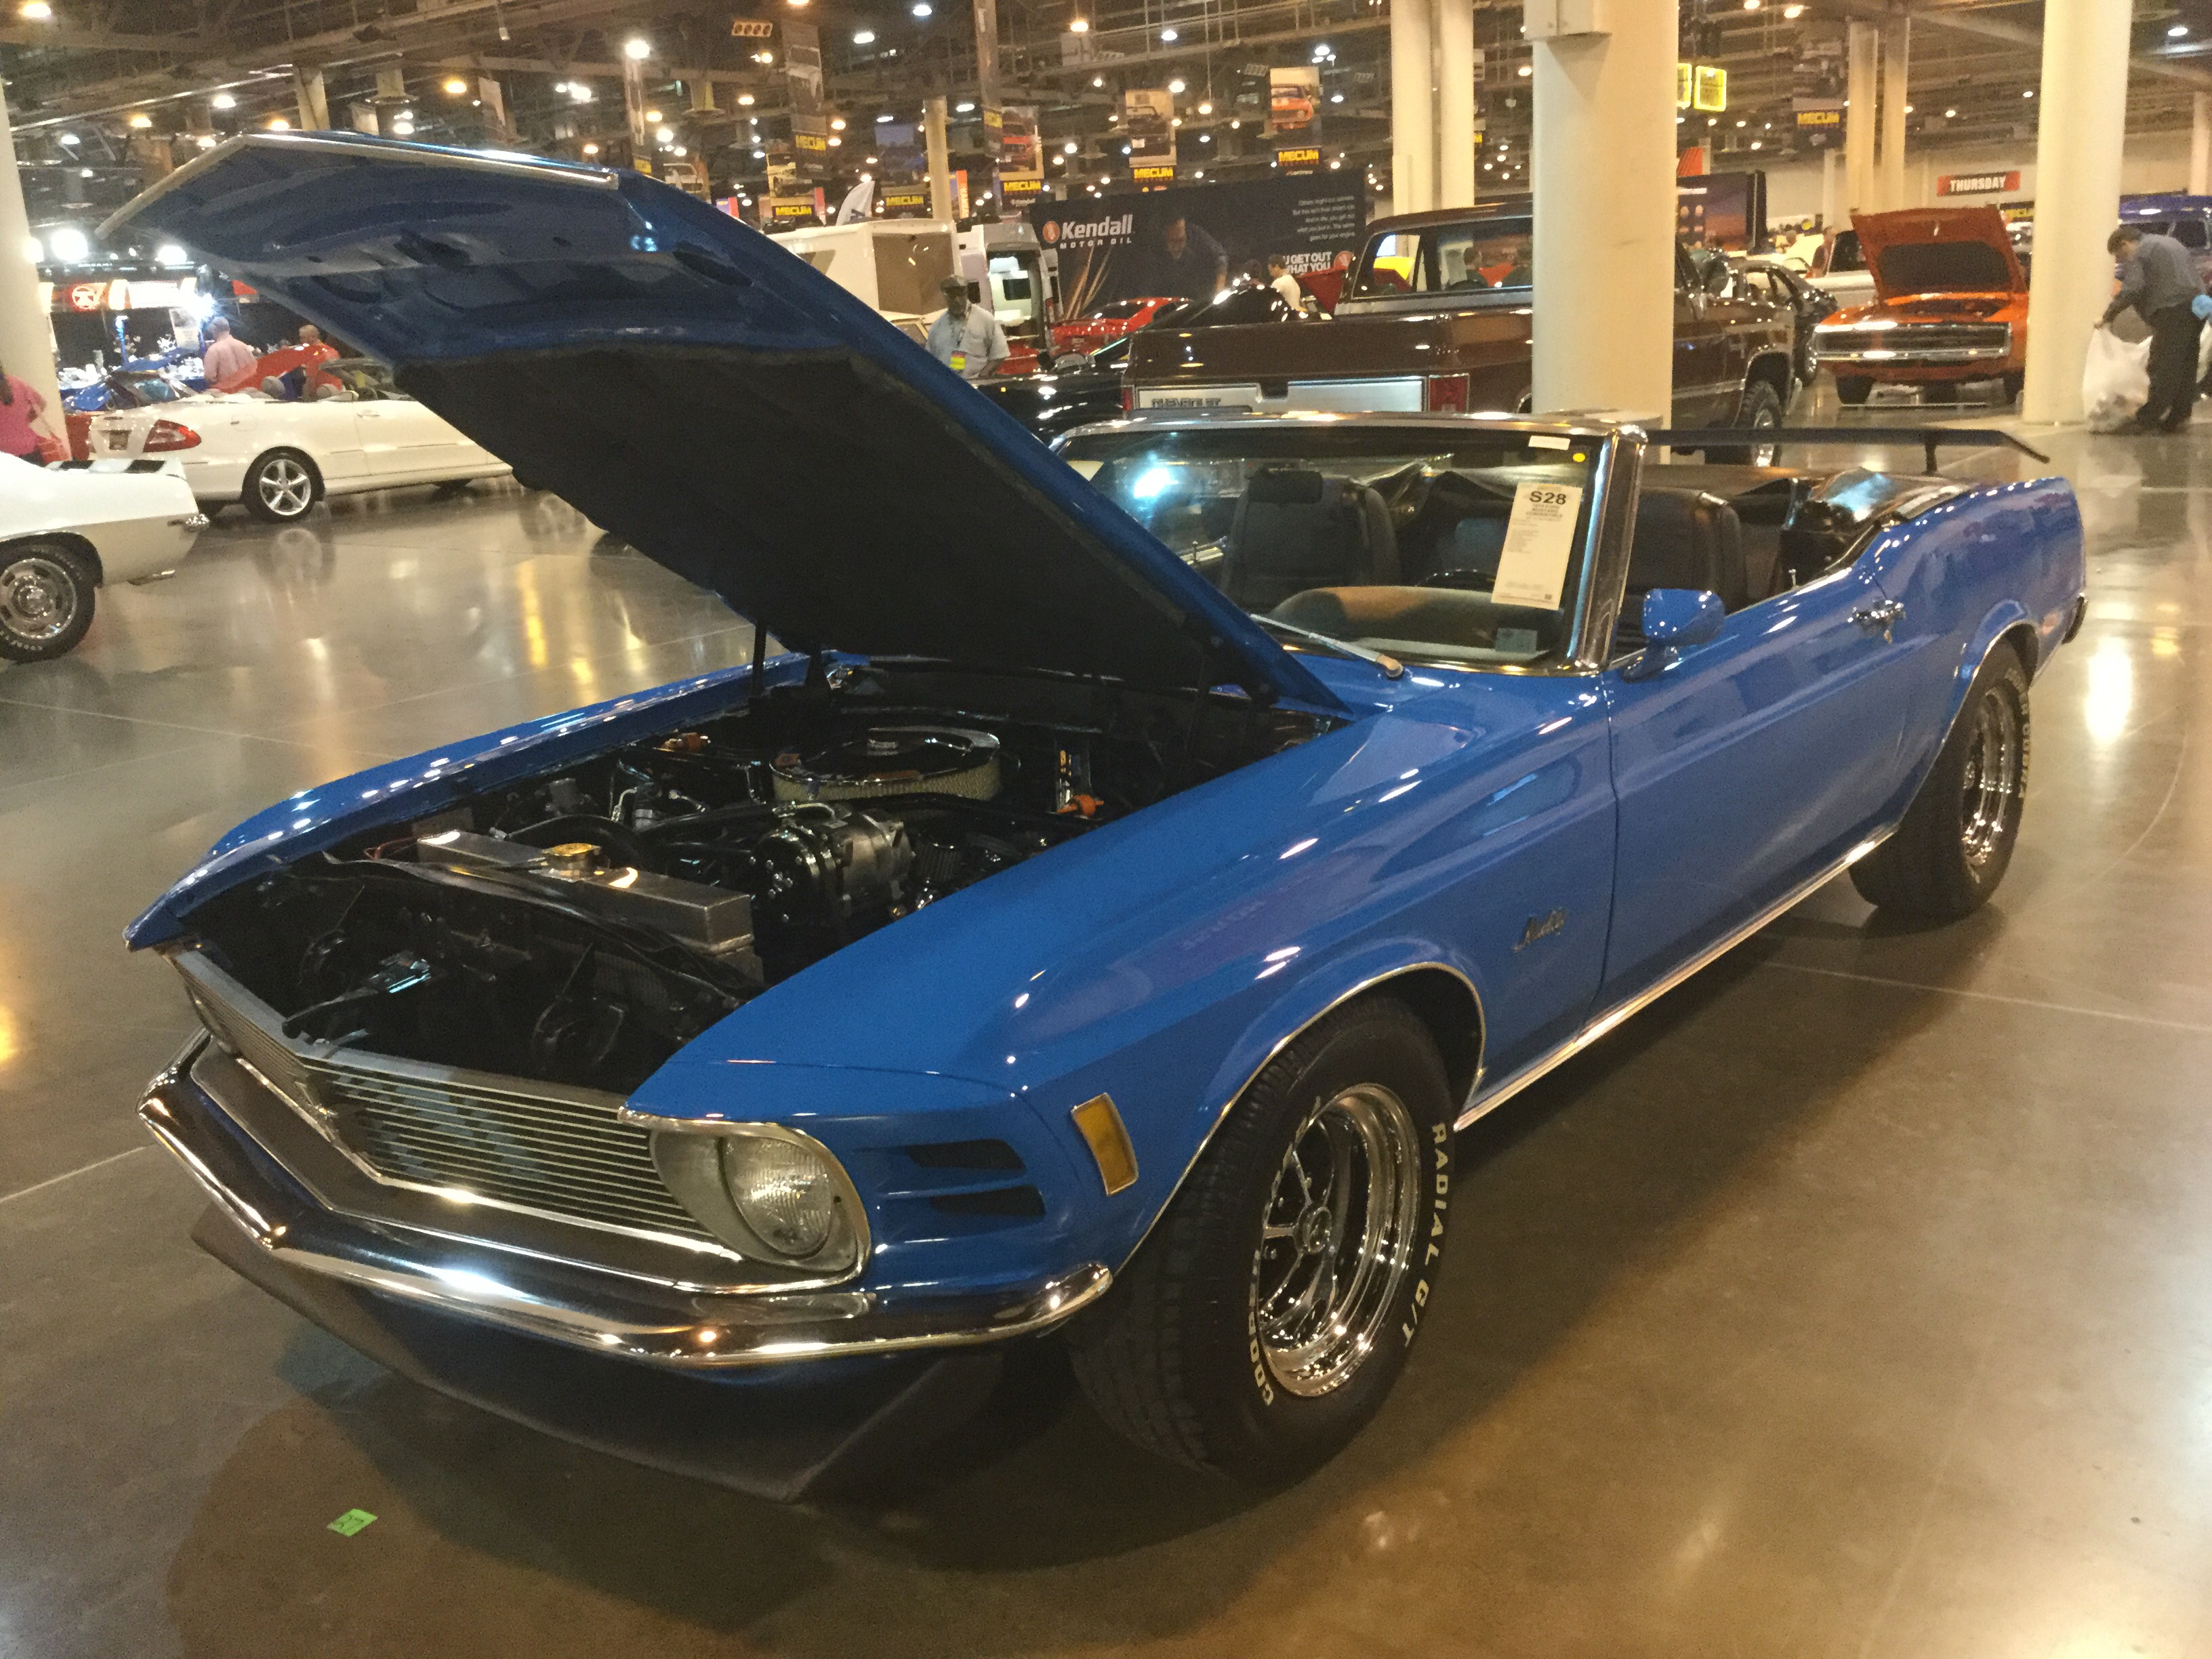 1970 ford mustang convertible 8 cyl 302cid 220hp 2bbl